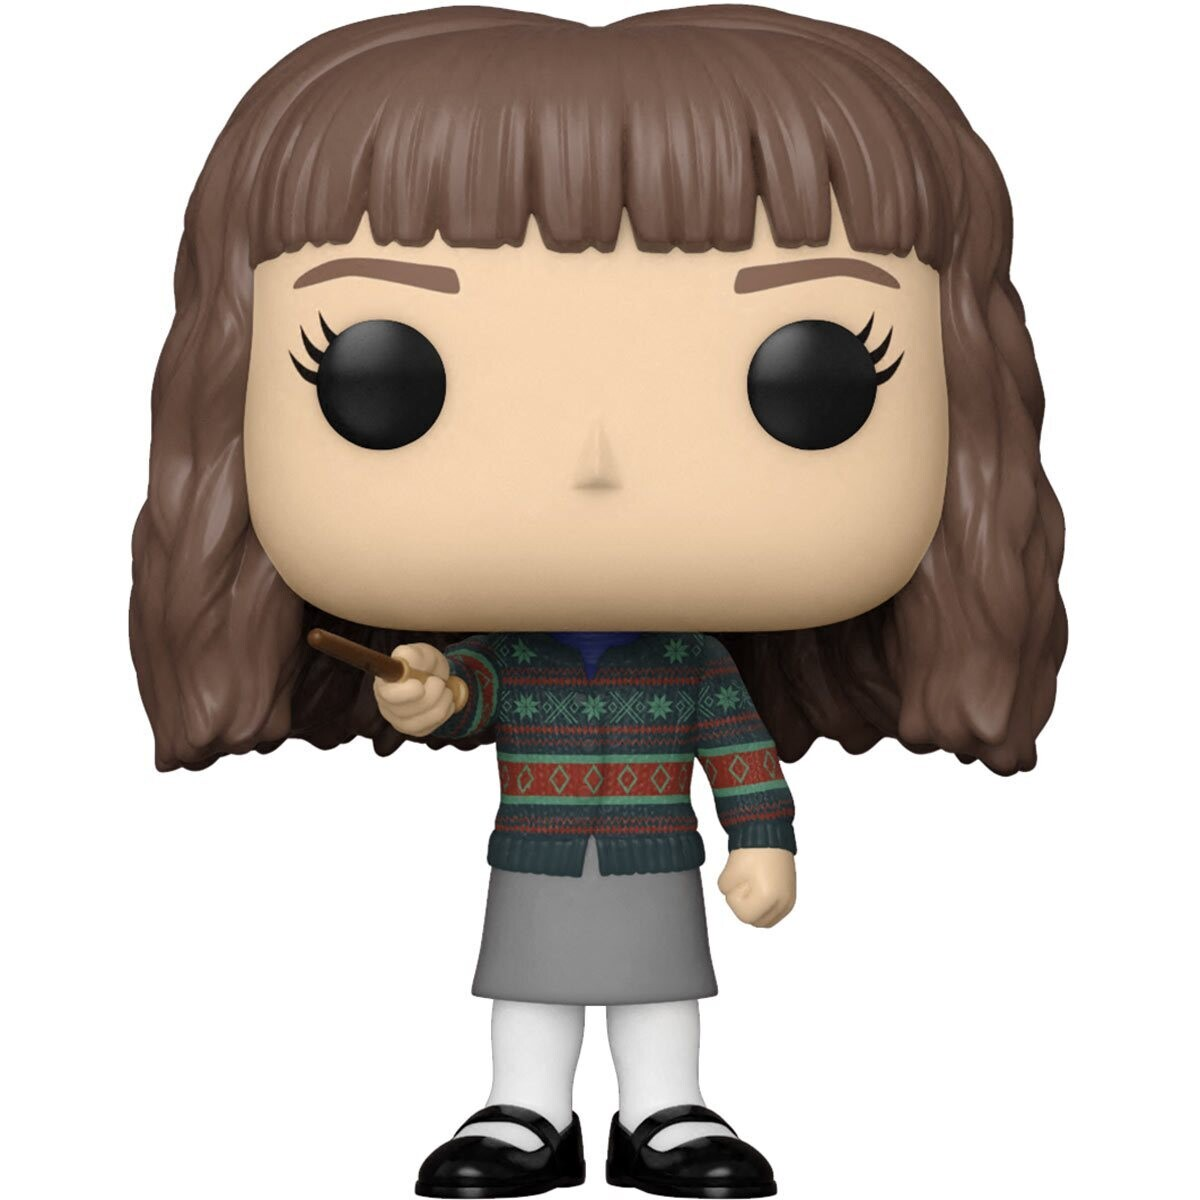 PRE-ORDER Funko Harry Potter and the Sorcerer's Stone 20th Anniversary - Hermoine with Want Pop! Vinyl Figure